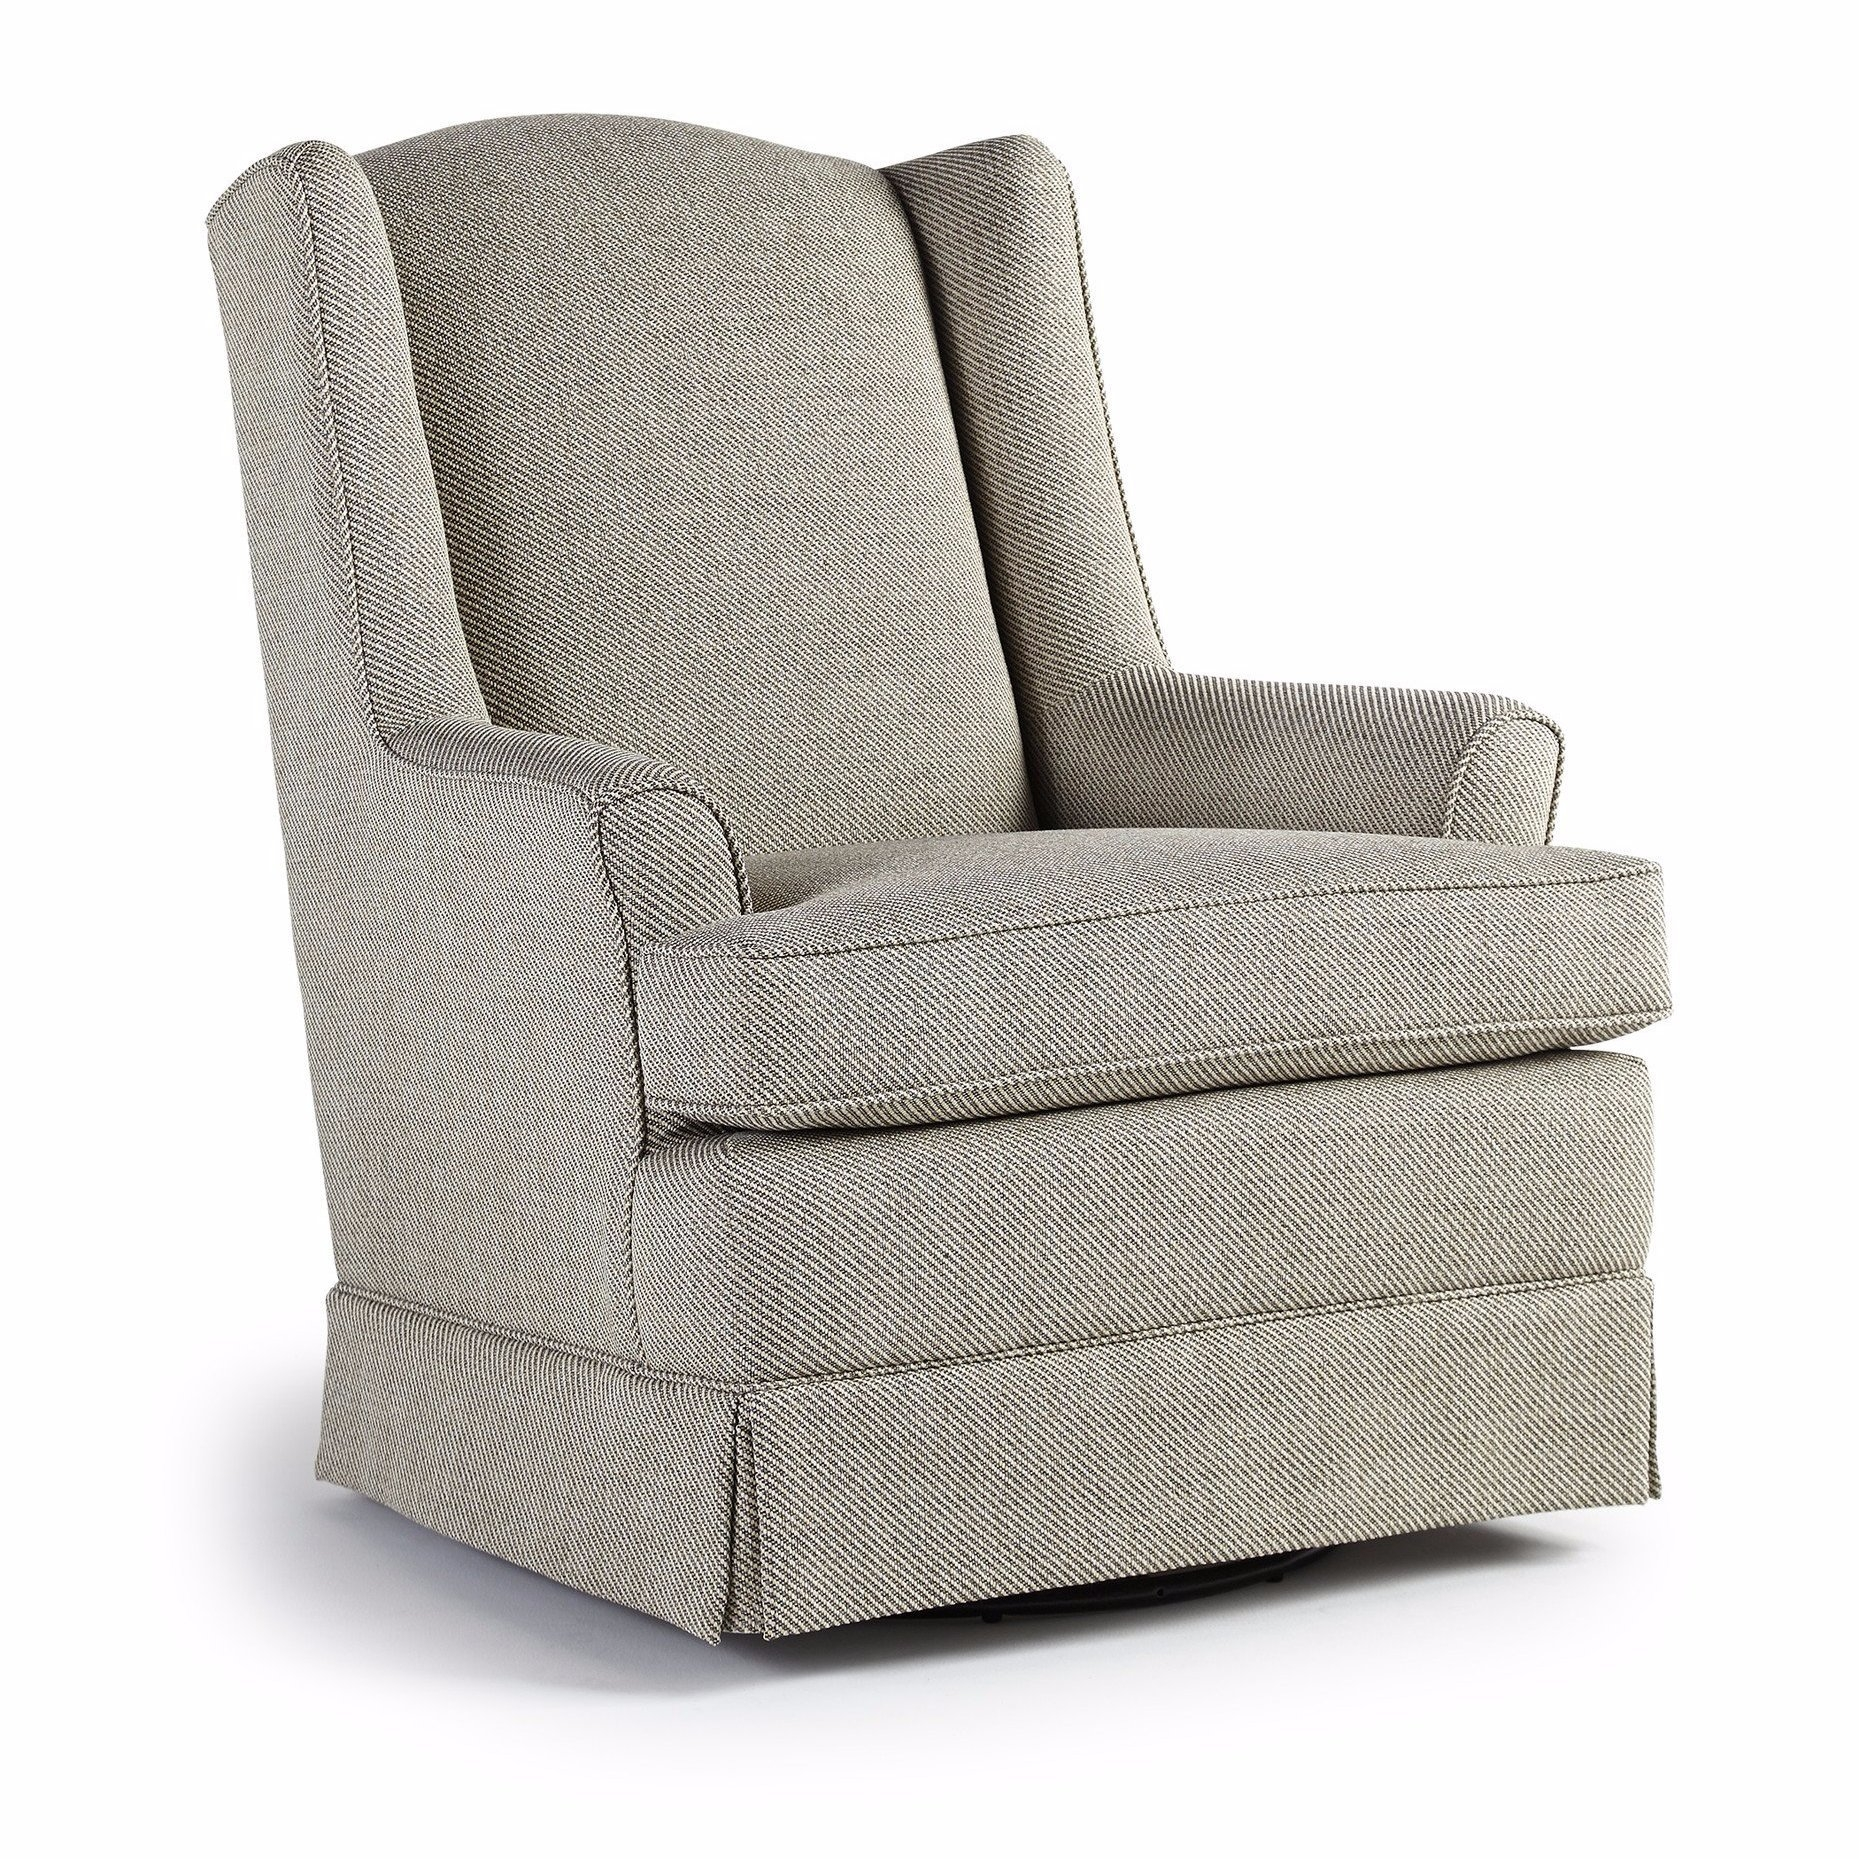 upholstered swivel living room chairs foter rh foter com swivel living room chairs lawton ok swivel living room chairs upholstered